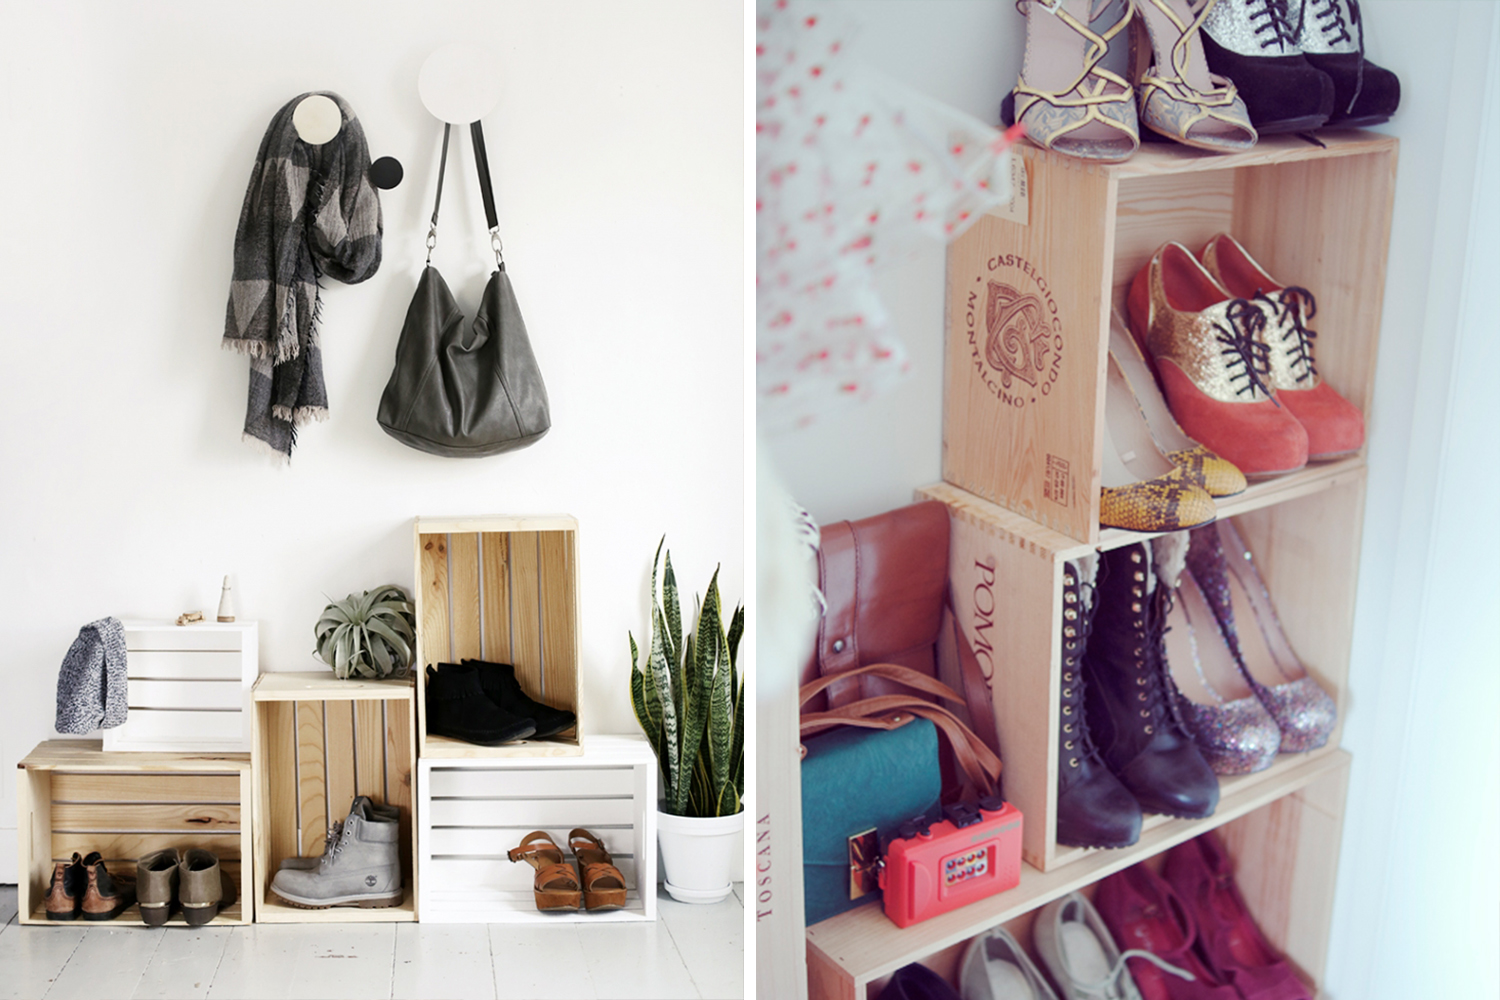 Crate shoe rack // Entryway organizing ideas // Shoe organizing and storage ideas // organized home // storage solutions // closet organizing // cheap DIY storage solutions // www.SimplySpaced.com